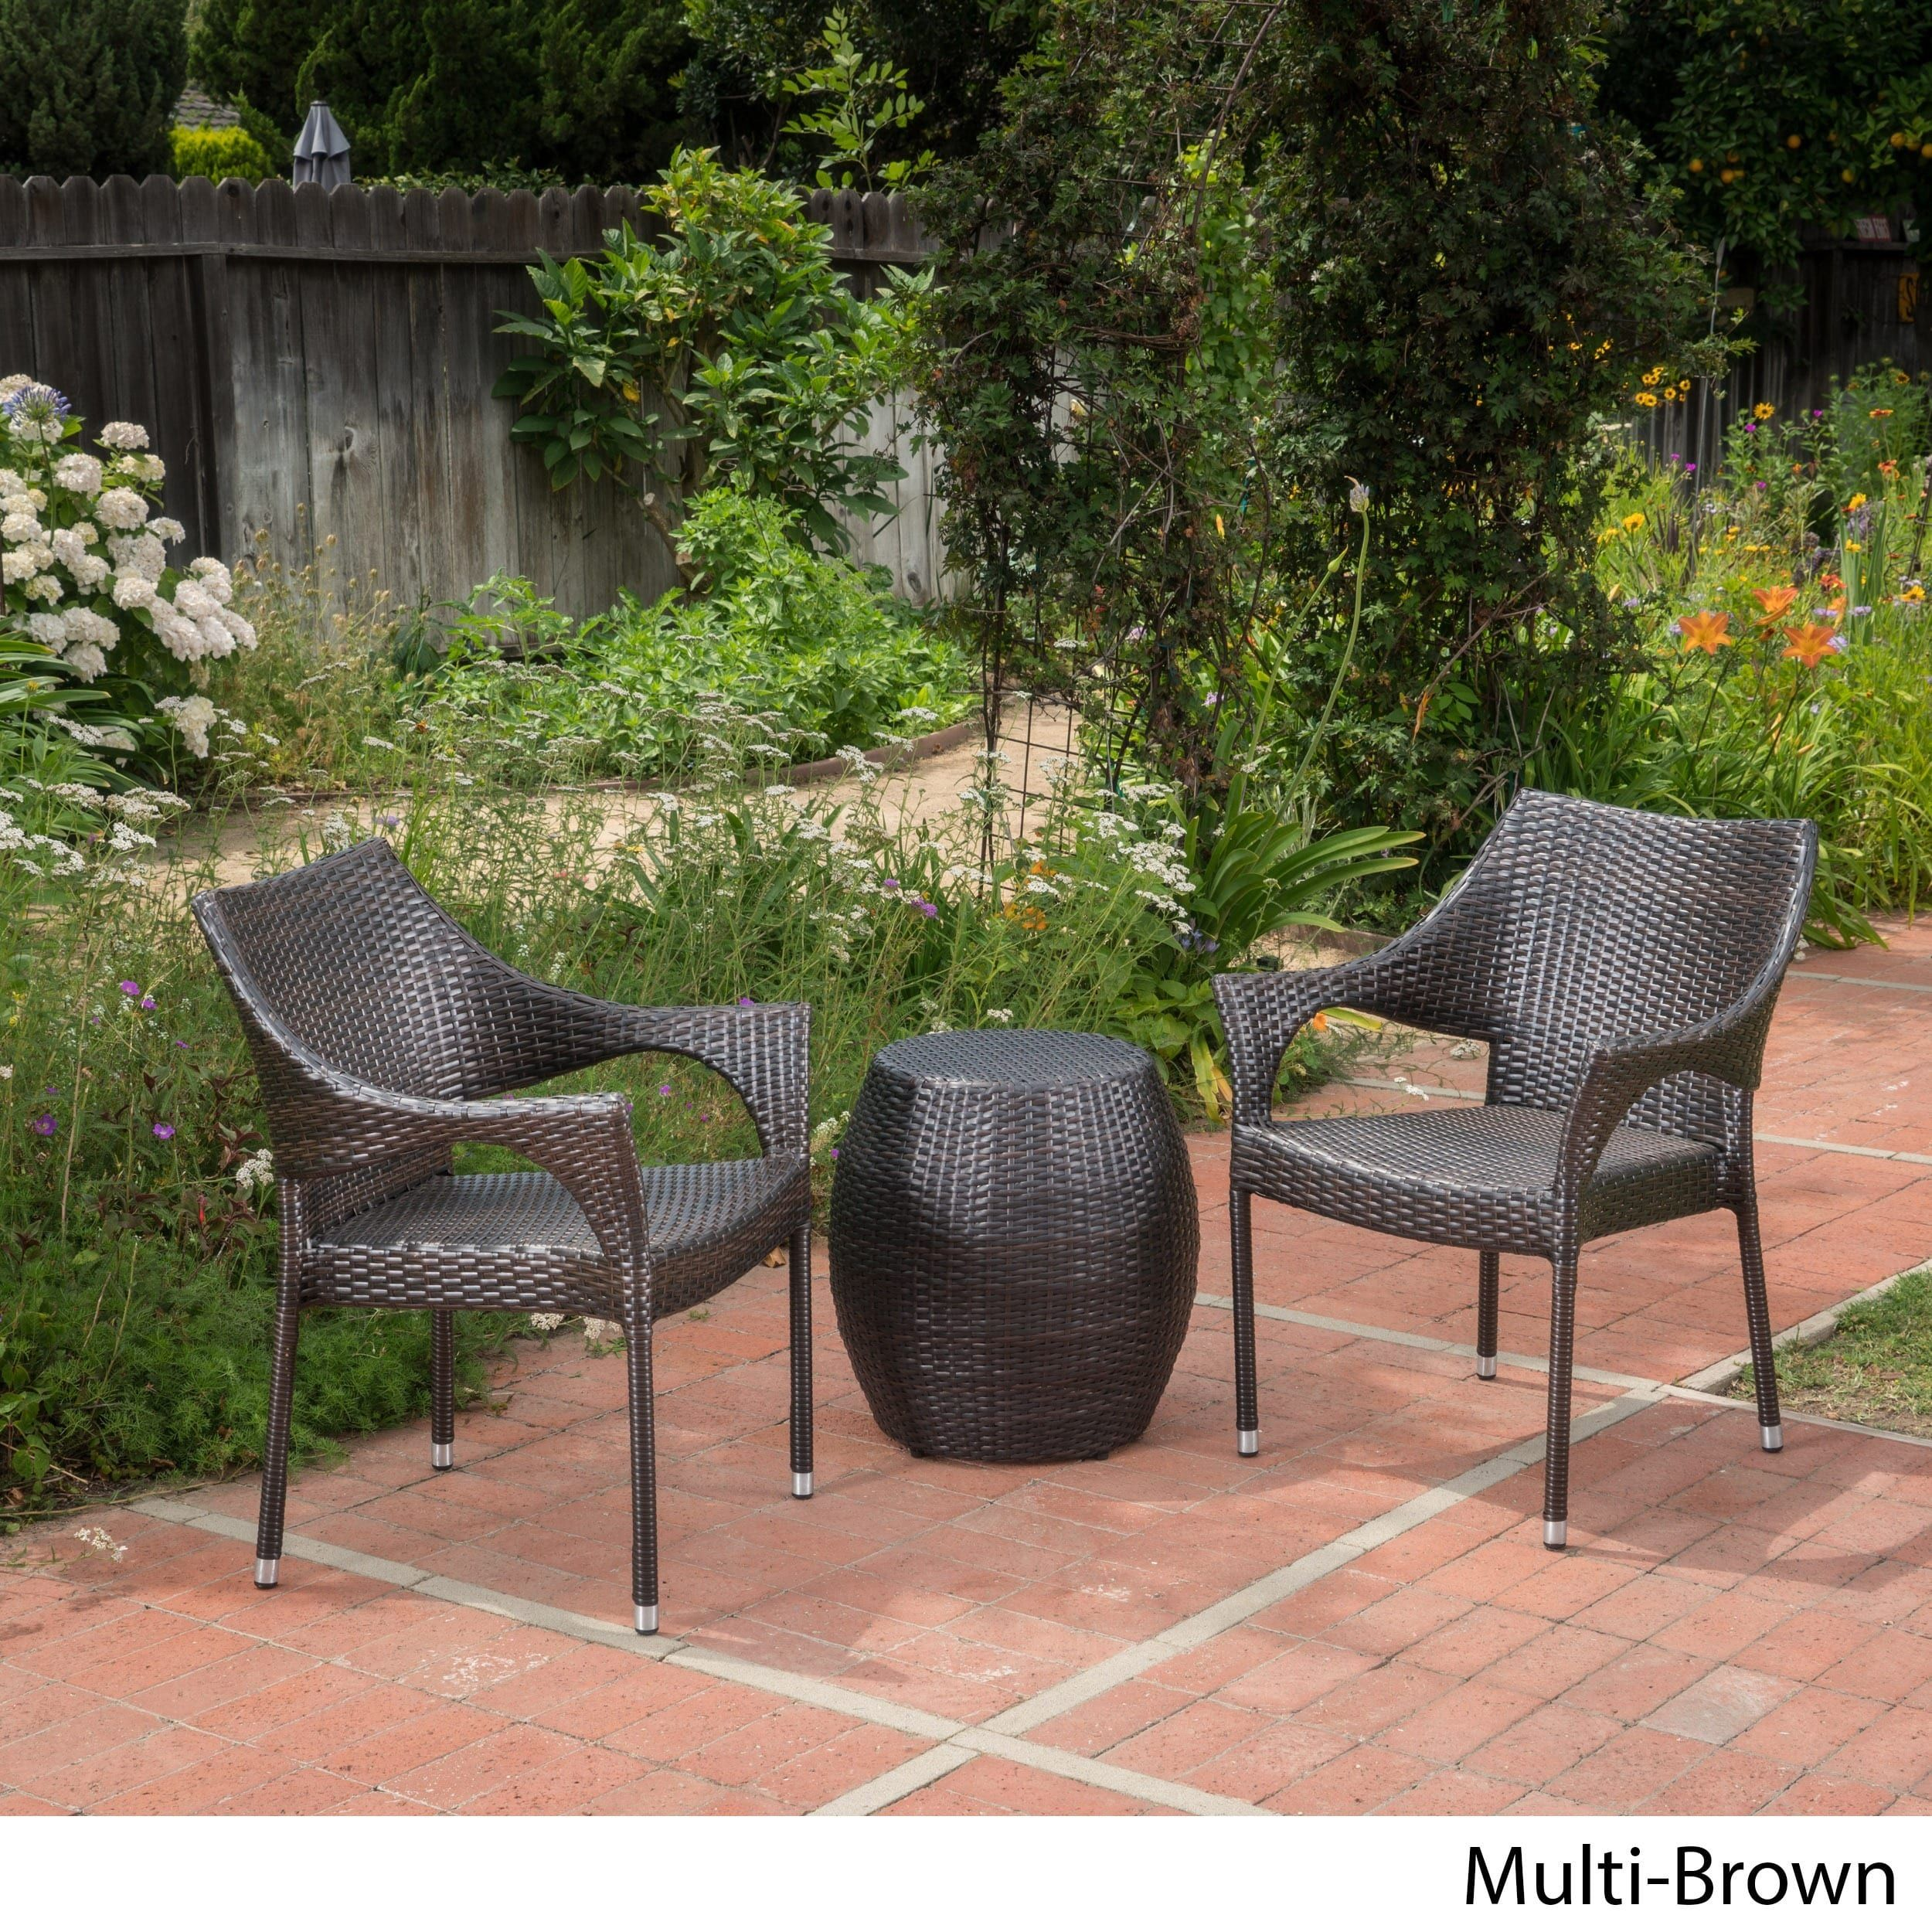 Pierce outdoor piece wicker stacking chair chat set by christopher